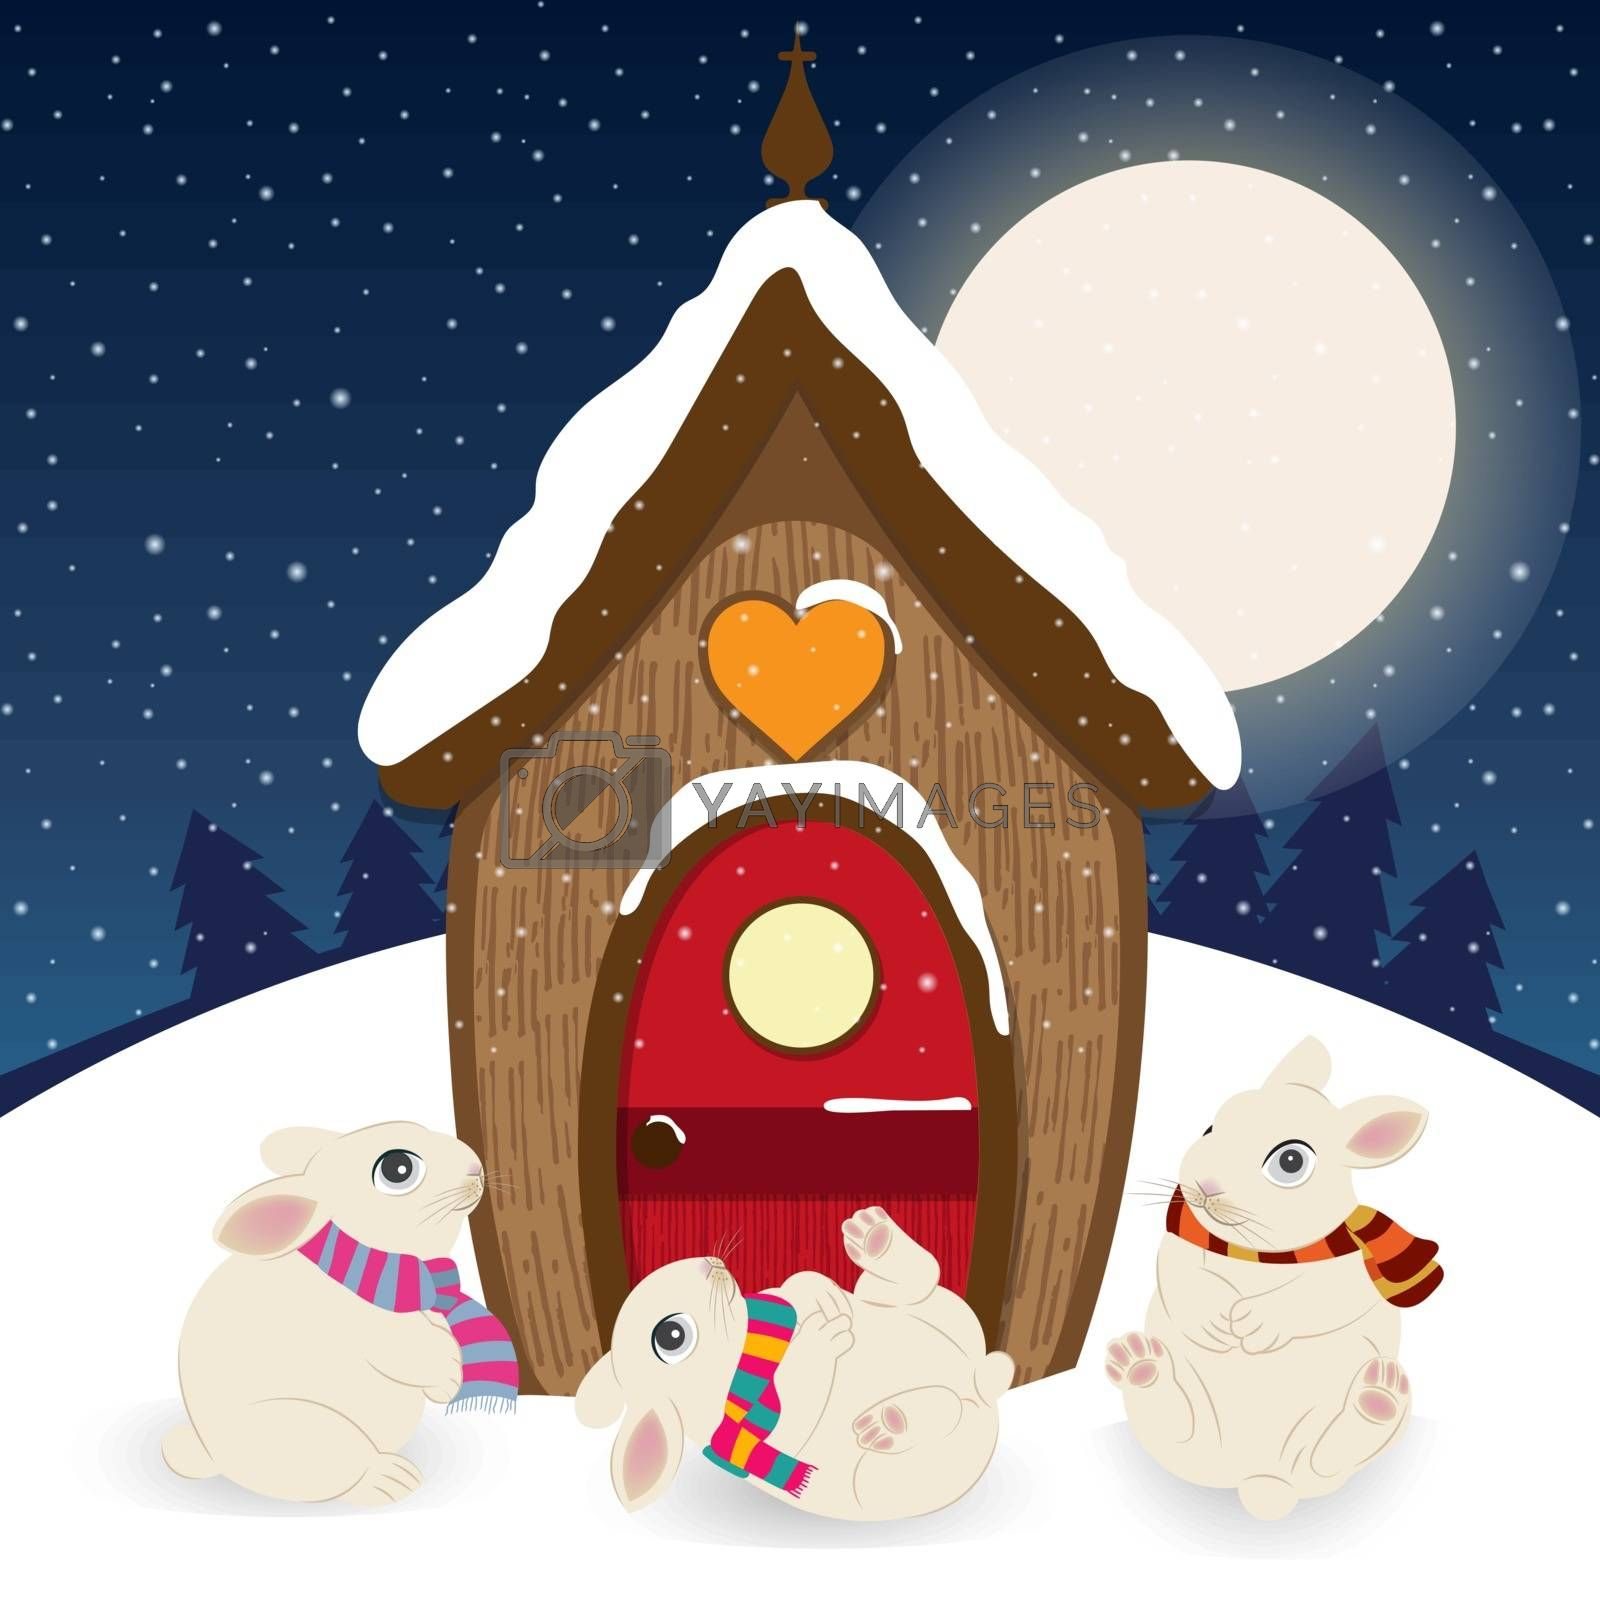 Cute Christmas scene with gnome house and happy bunnies